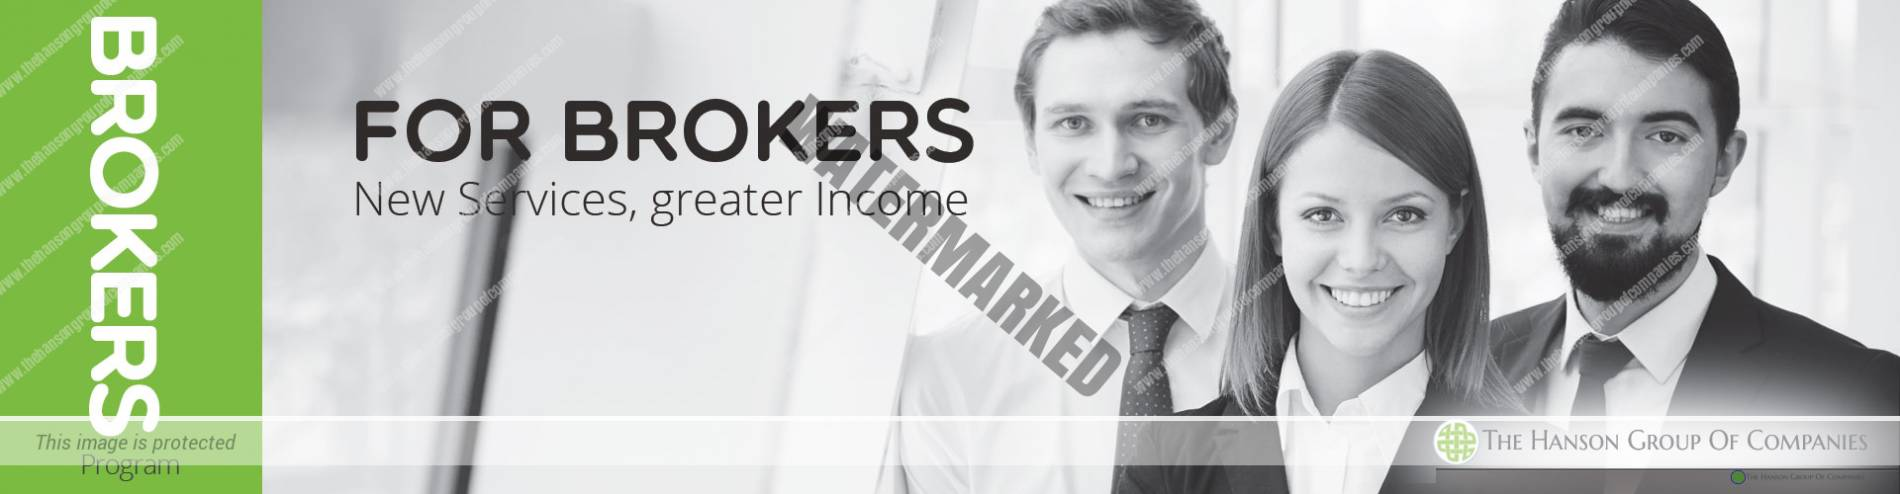 brokers-program-resize